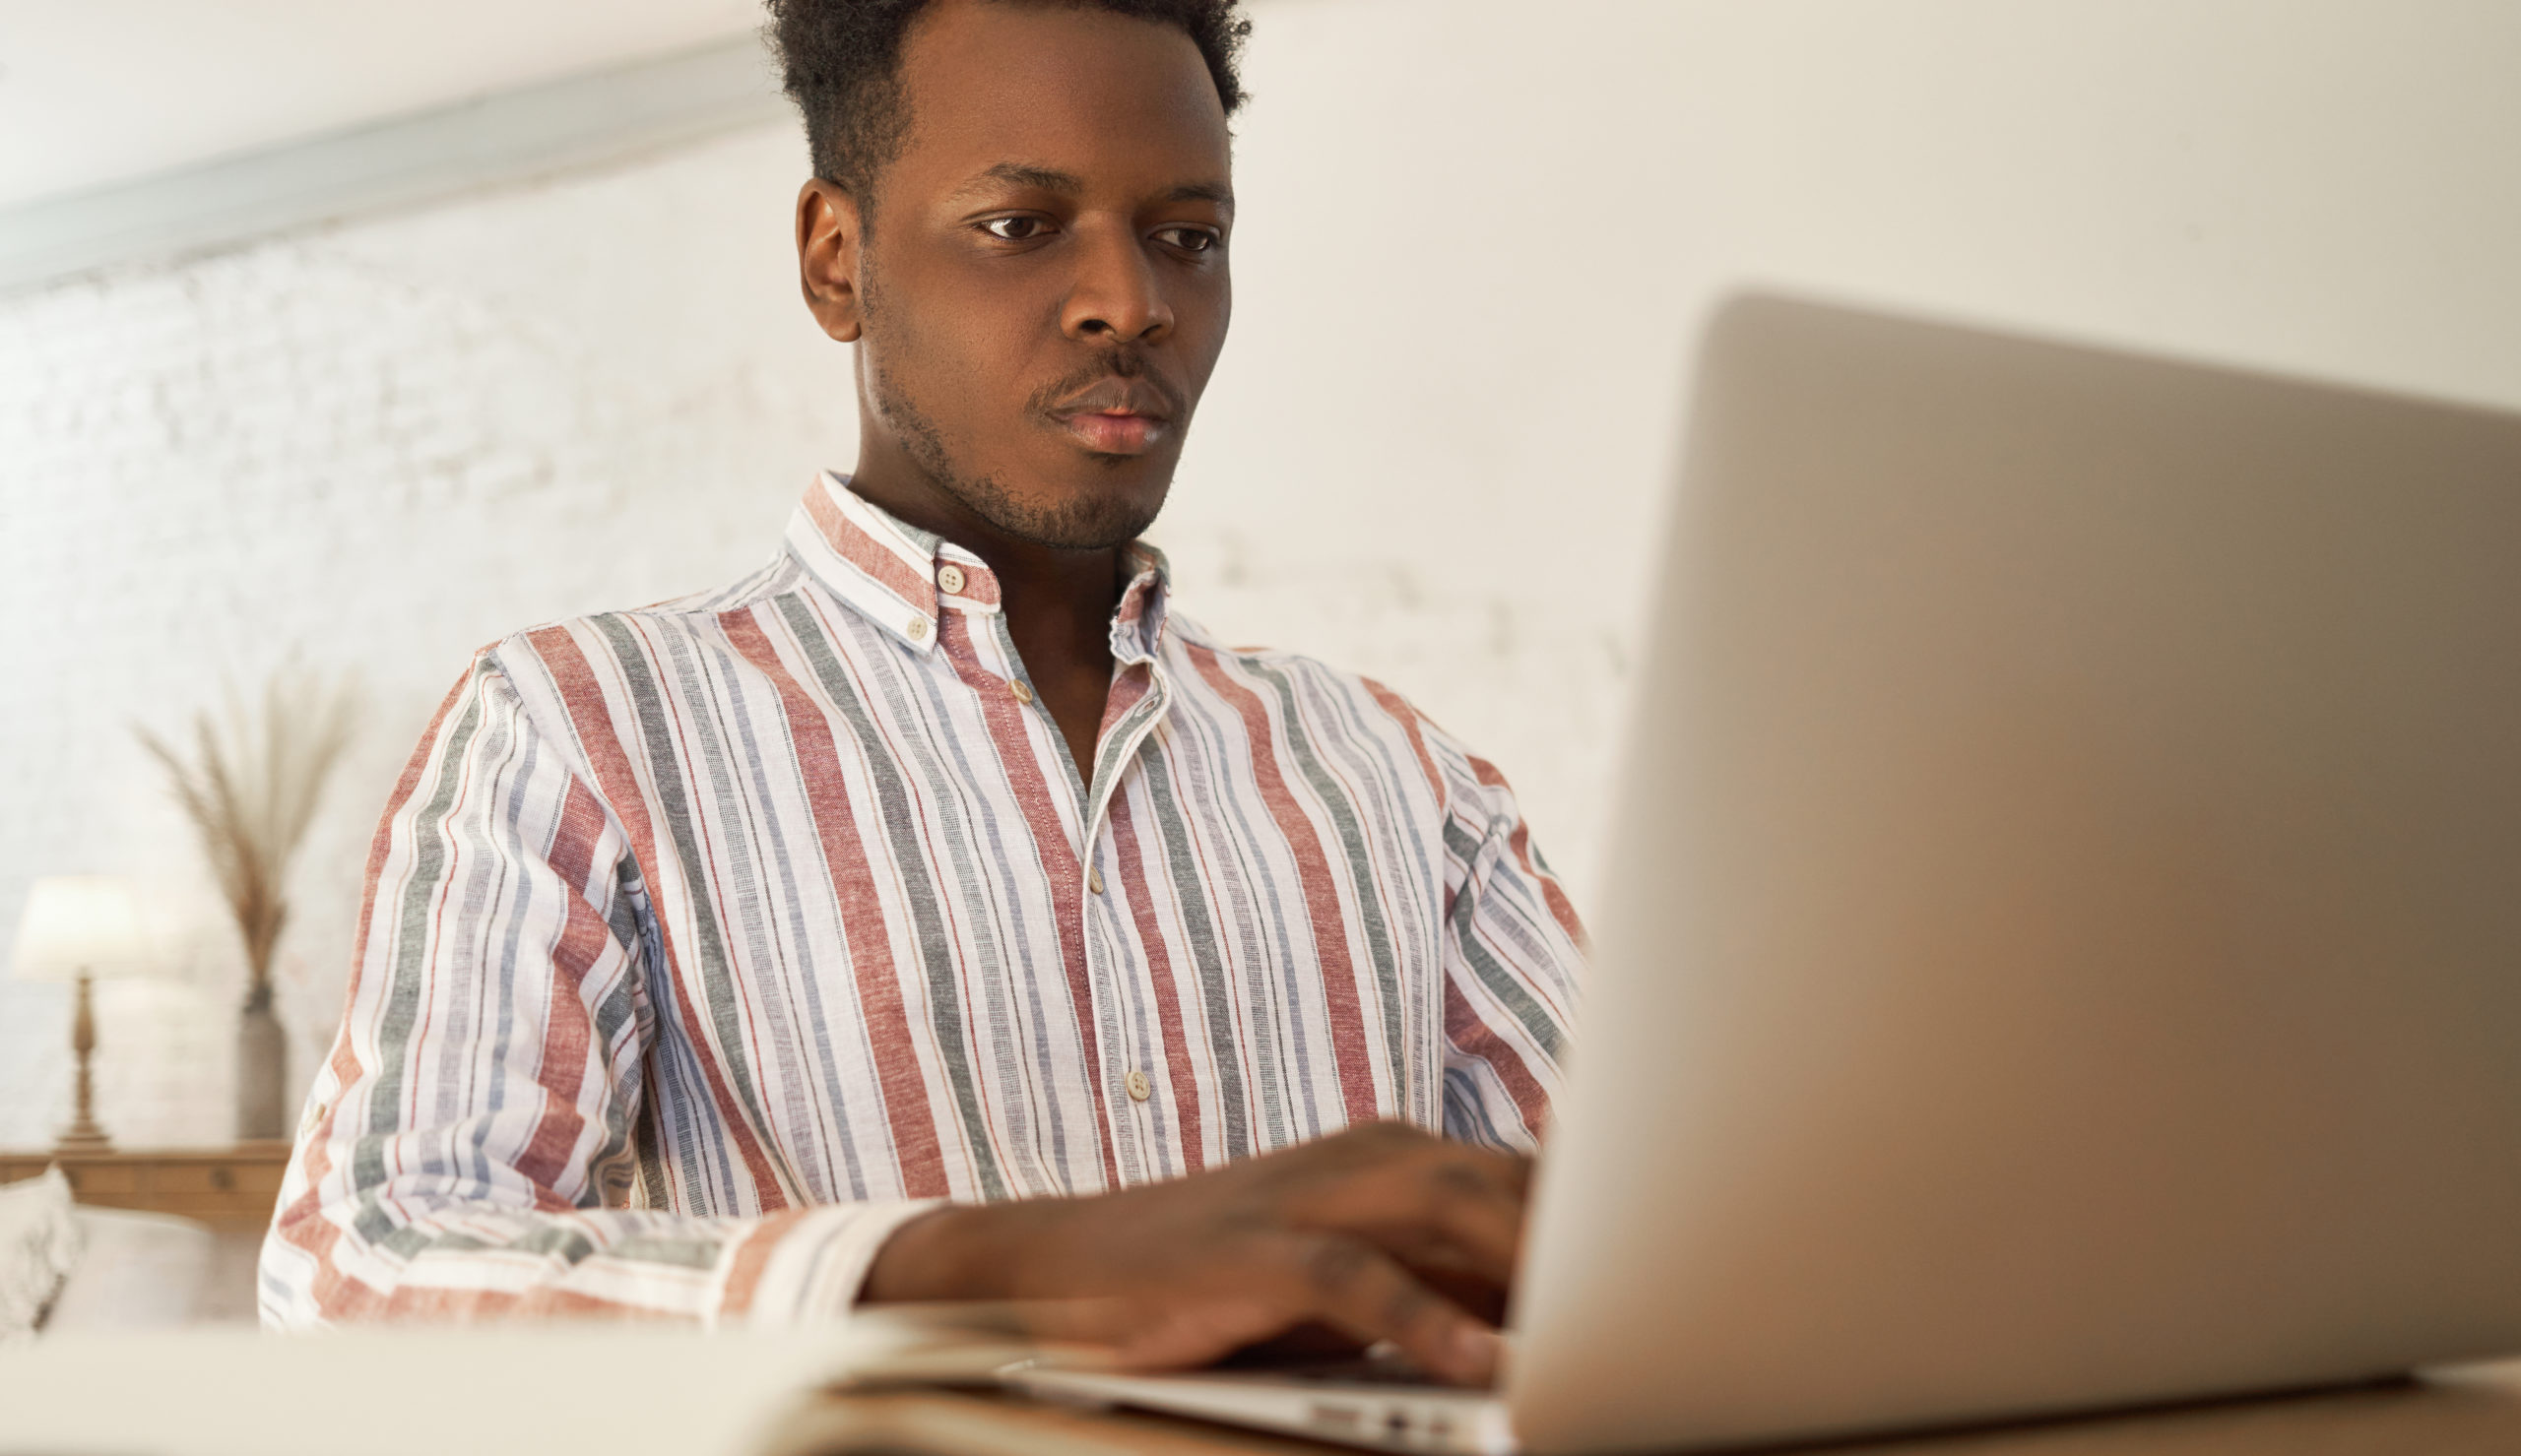 Focused young african male applying for jobs online